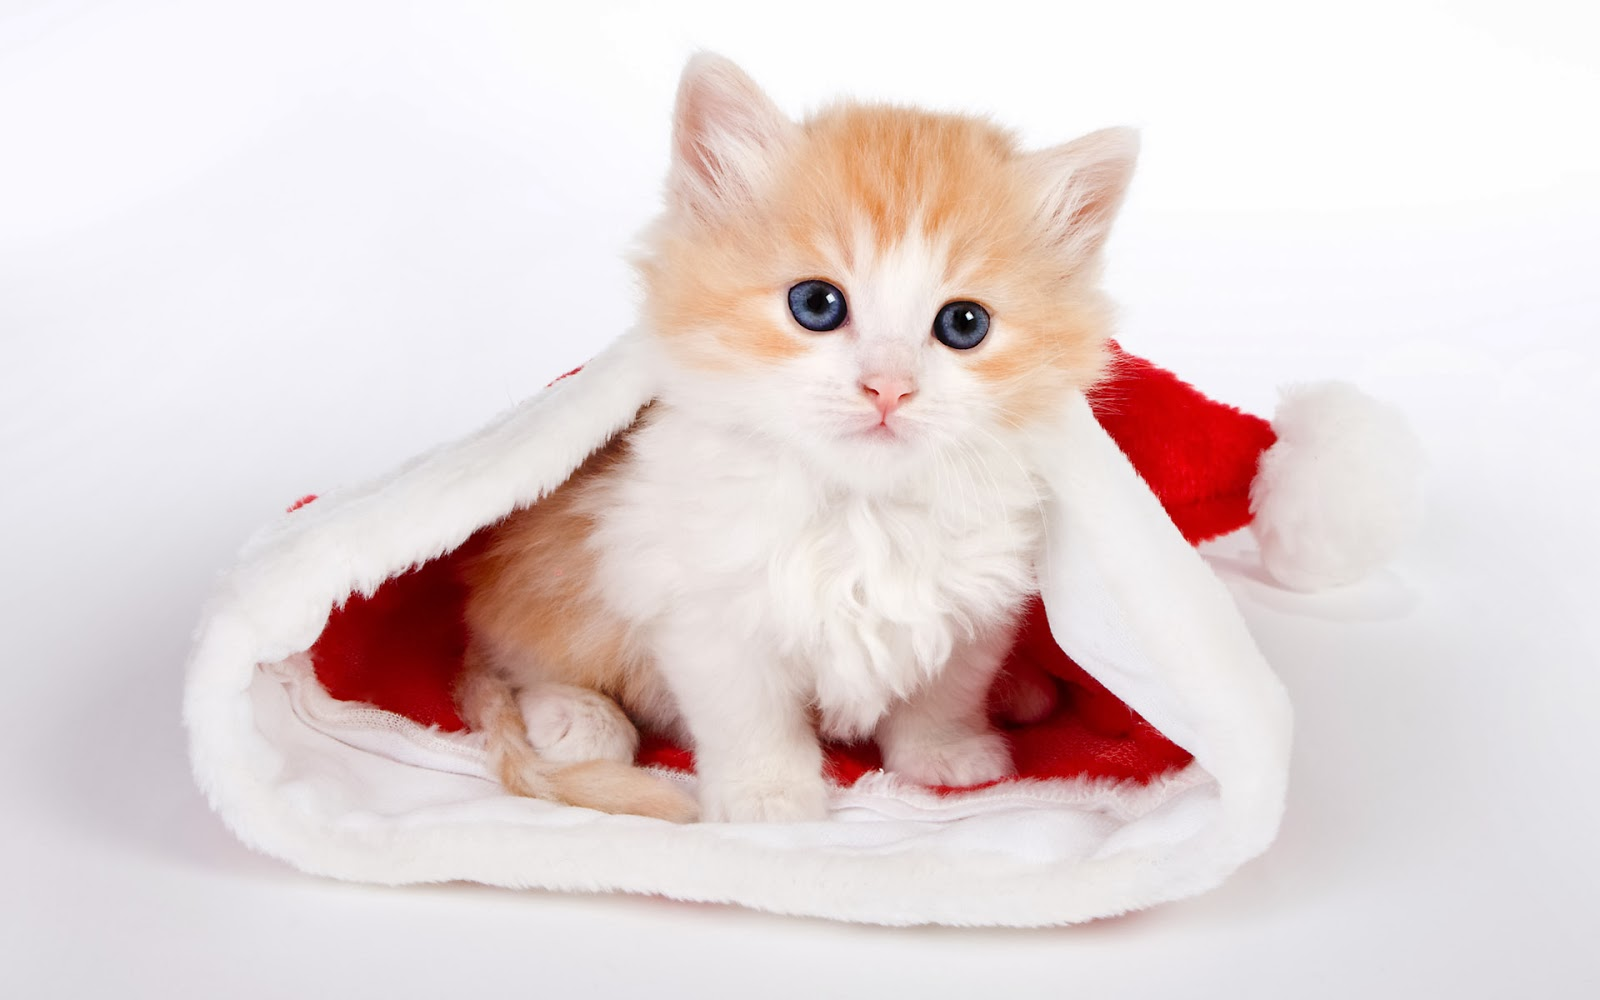 Visitors Can Download Free HD Cute Cat Wallpapers Of Their Own Choice By Following The Given Categories